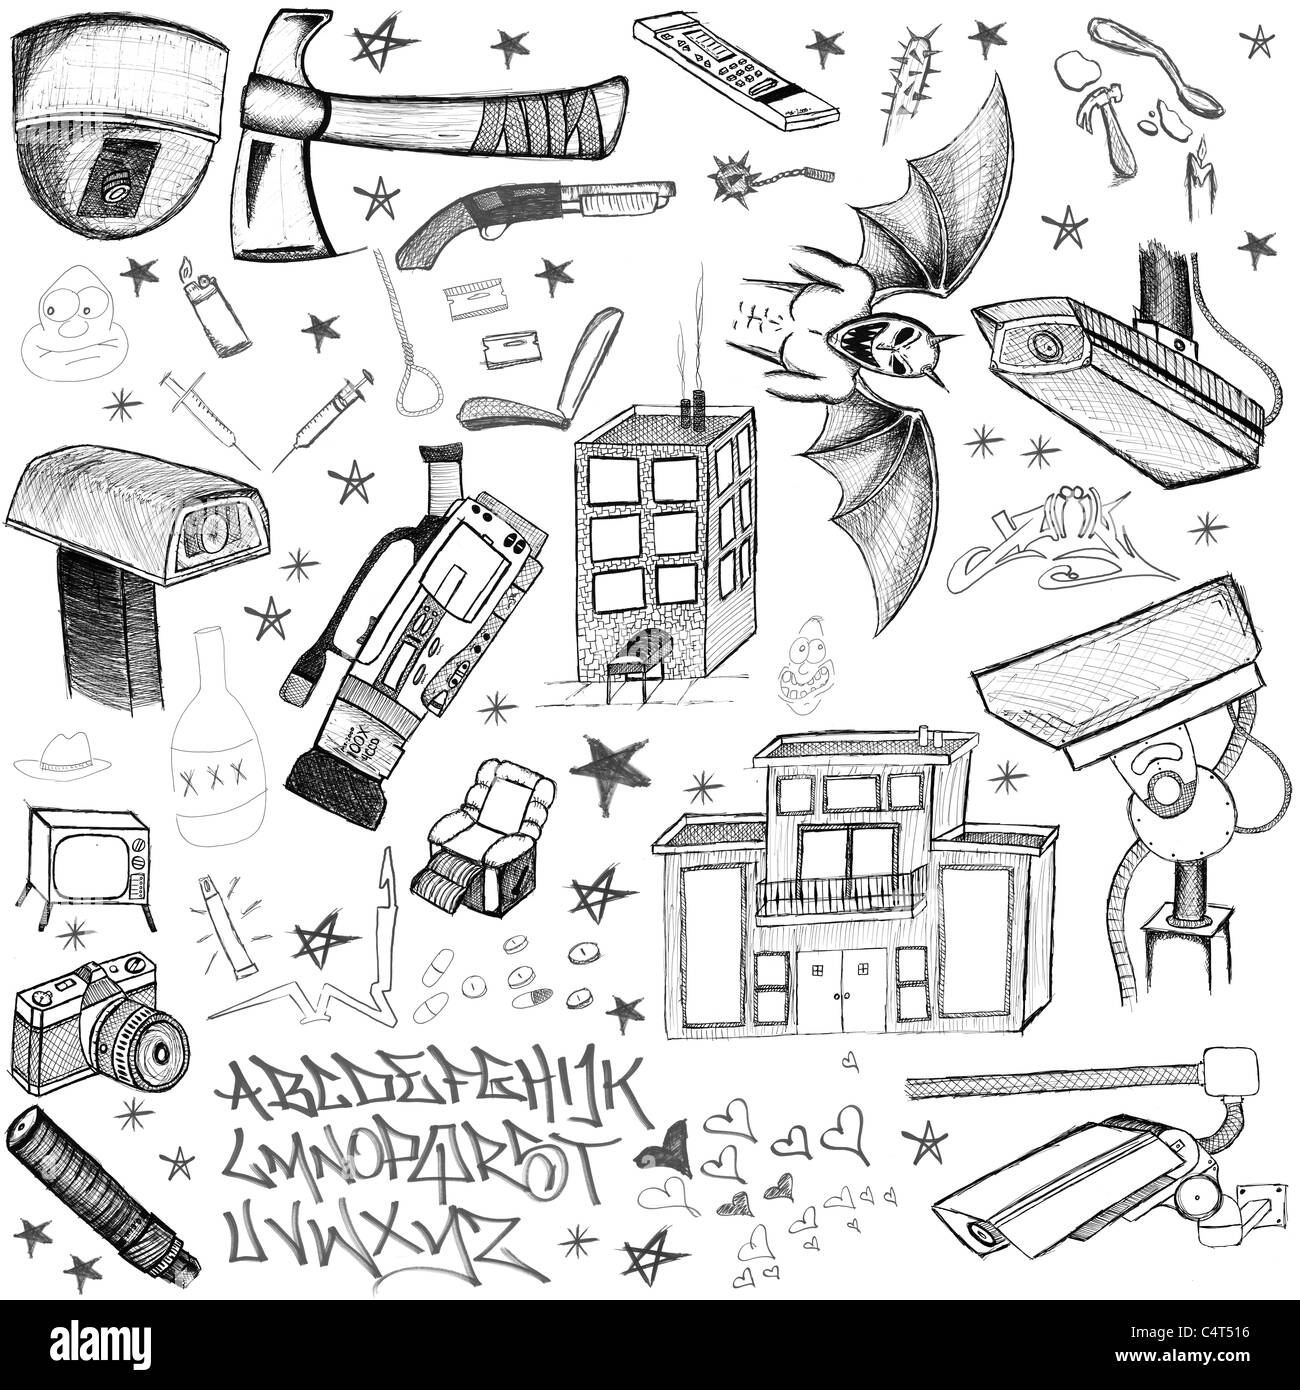 Hand drawn doodles design elements scetch dessin gribouillis Photo Stock